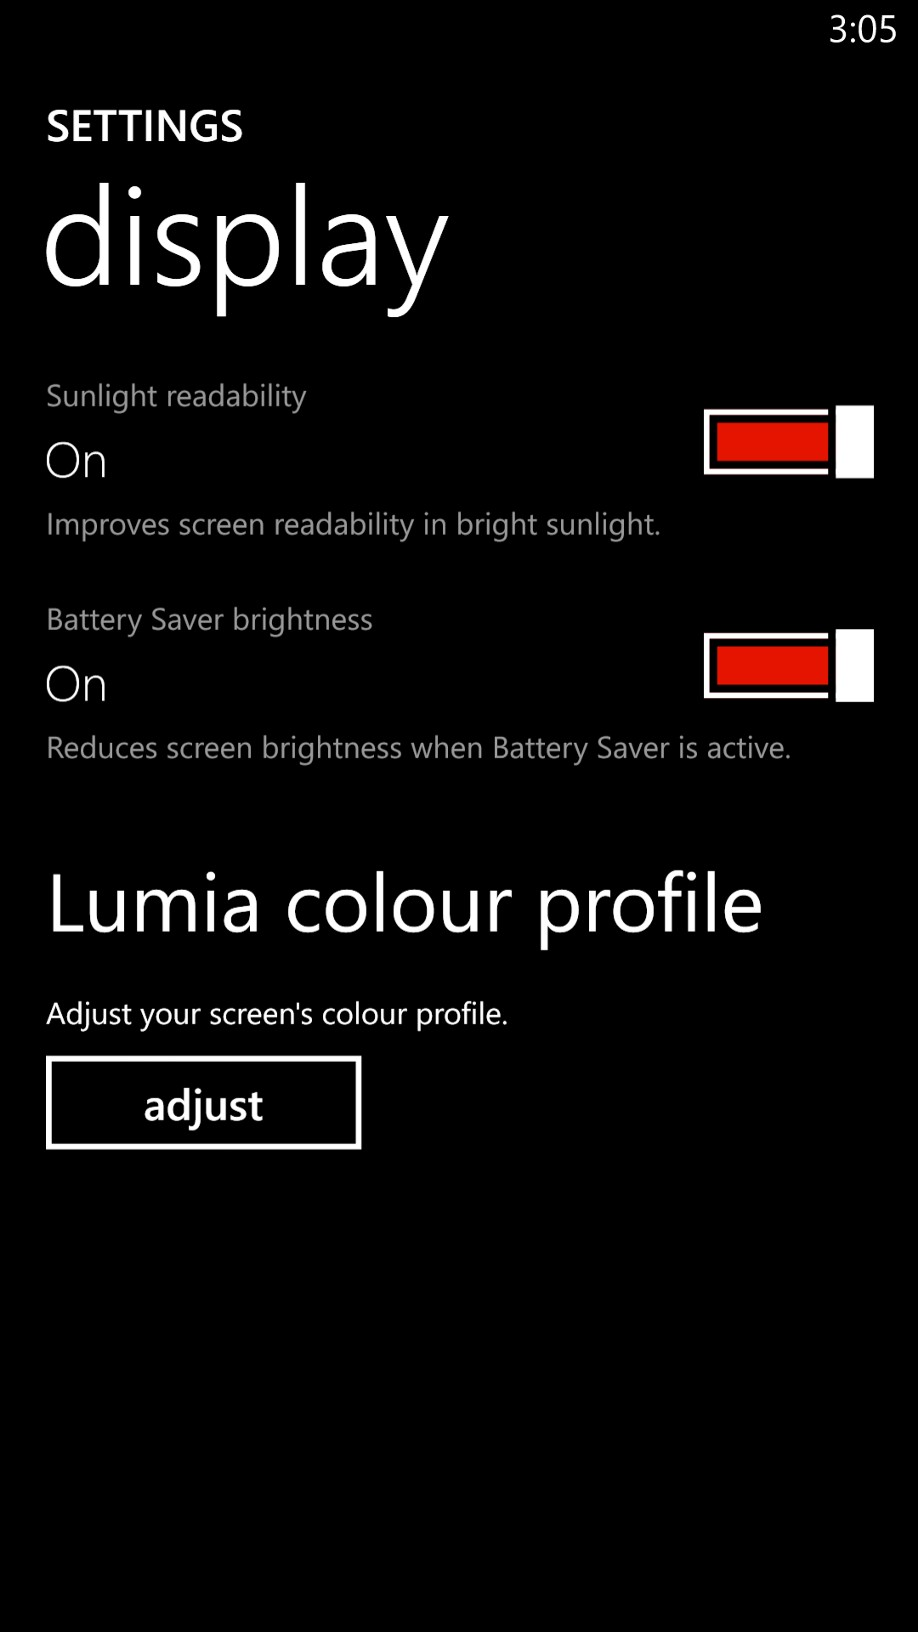 Most high-end Nokia Lumia smartphones come with a setting that allows you to adjust the color profile.